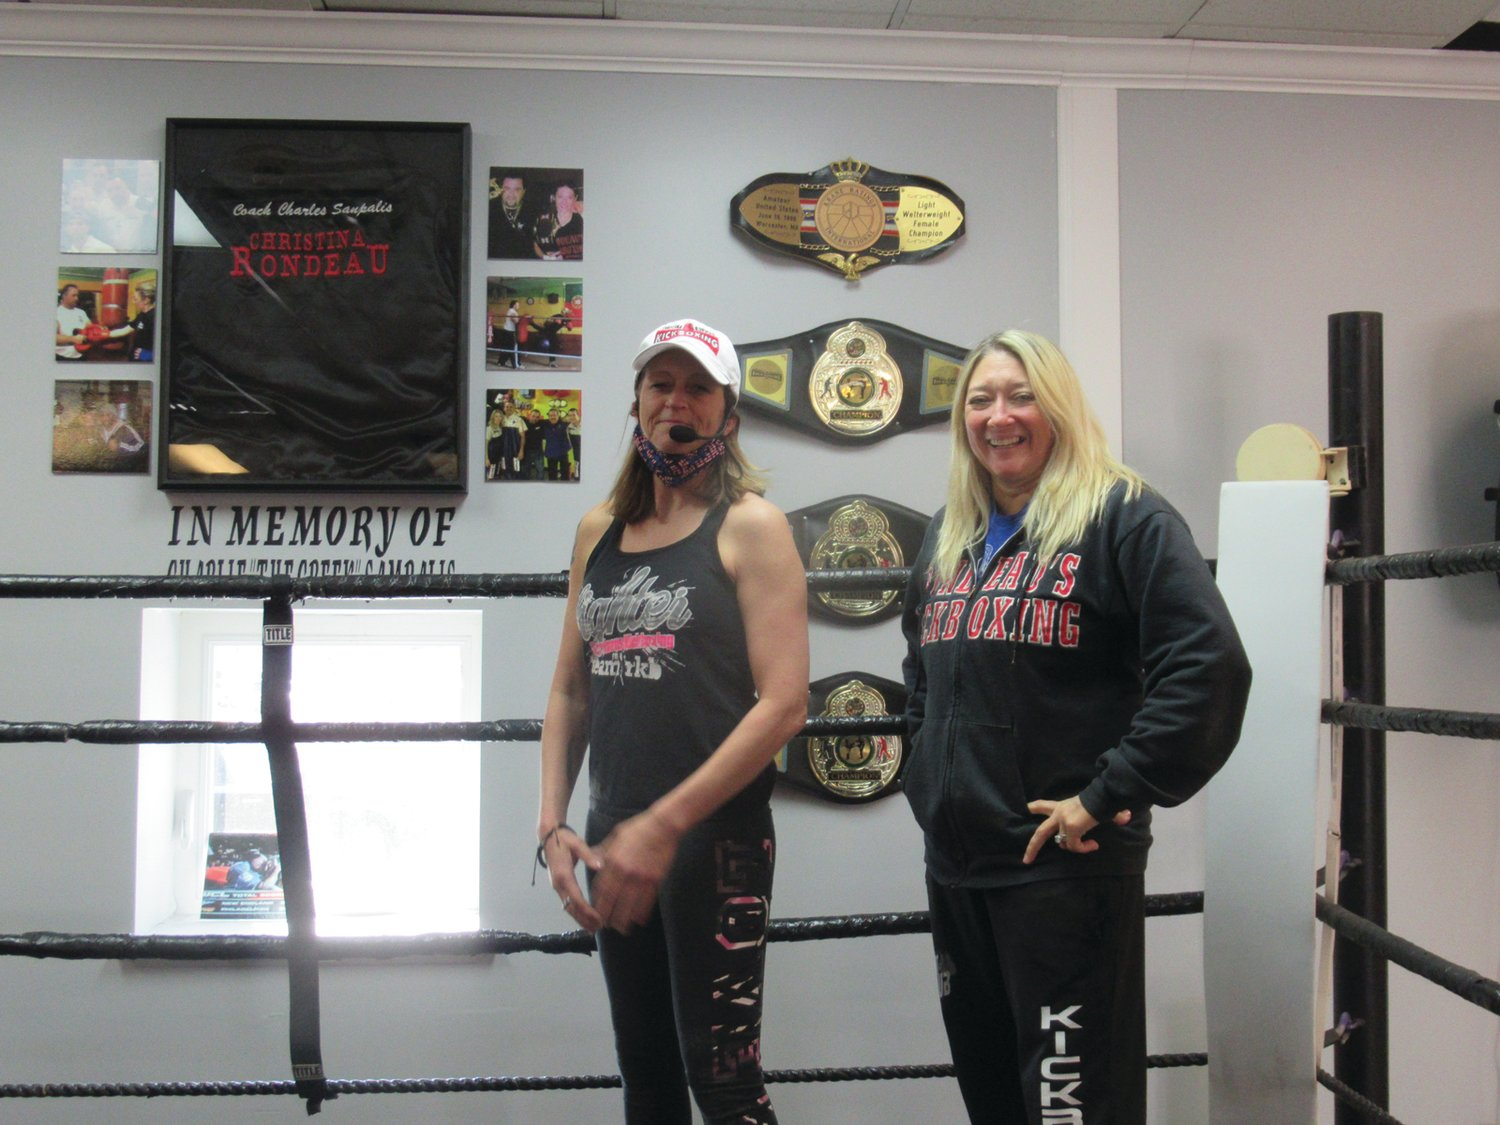 CHAMP'S CORNER: Famed U.S. champion kickboxer and 5th Degree Black Belt Christina Rondeau (right) and Becky Rhodes enjoy a special moment inside the ring during Saturday's special open house.